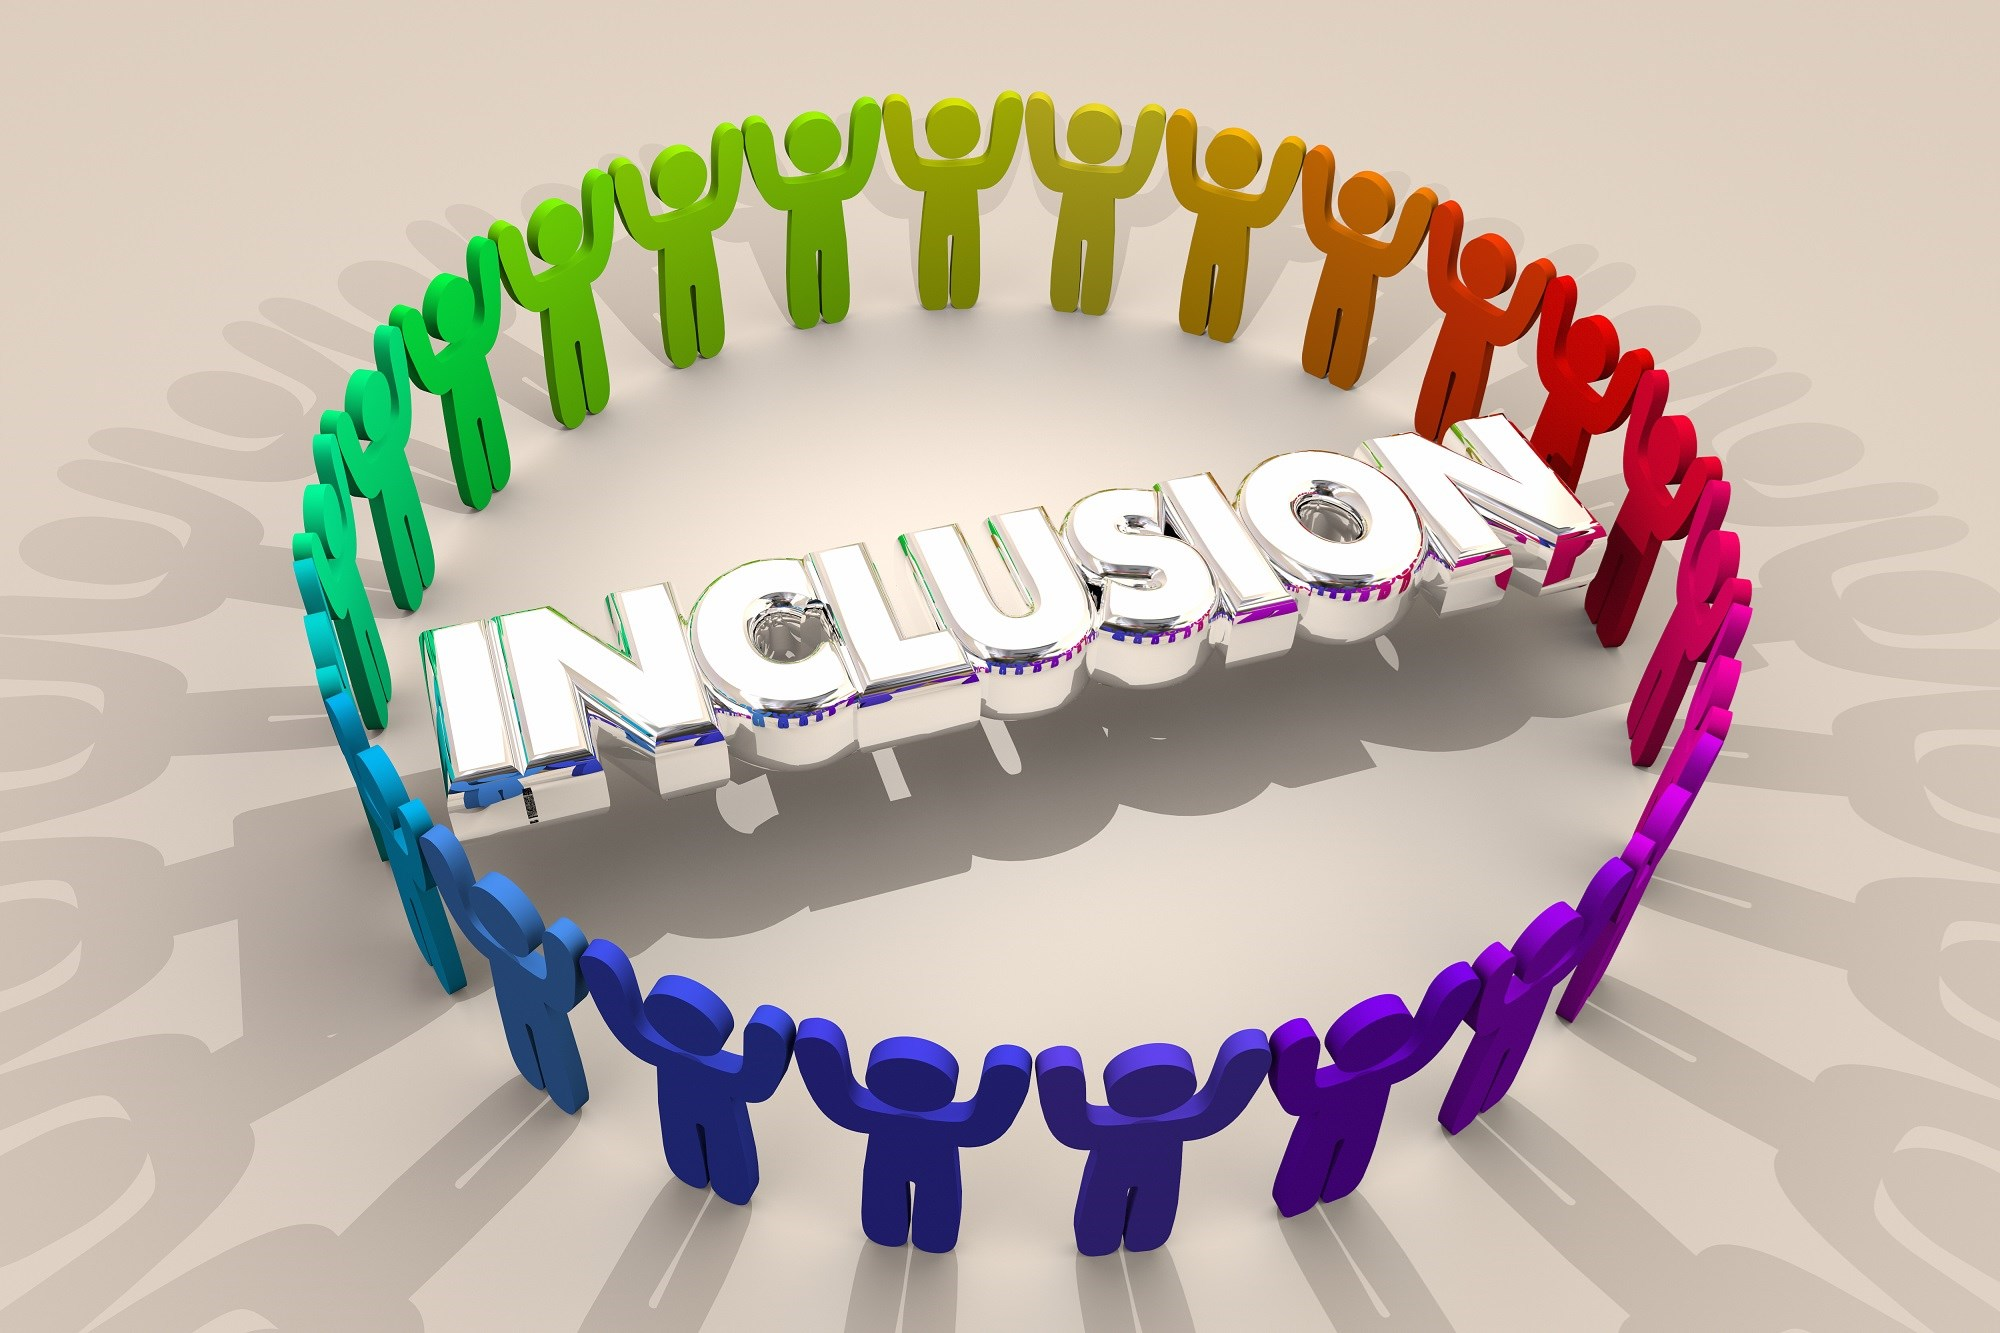 6 Factors Related to Inclusion in Health Care Workplace Identified